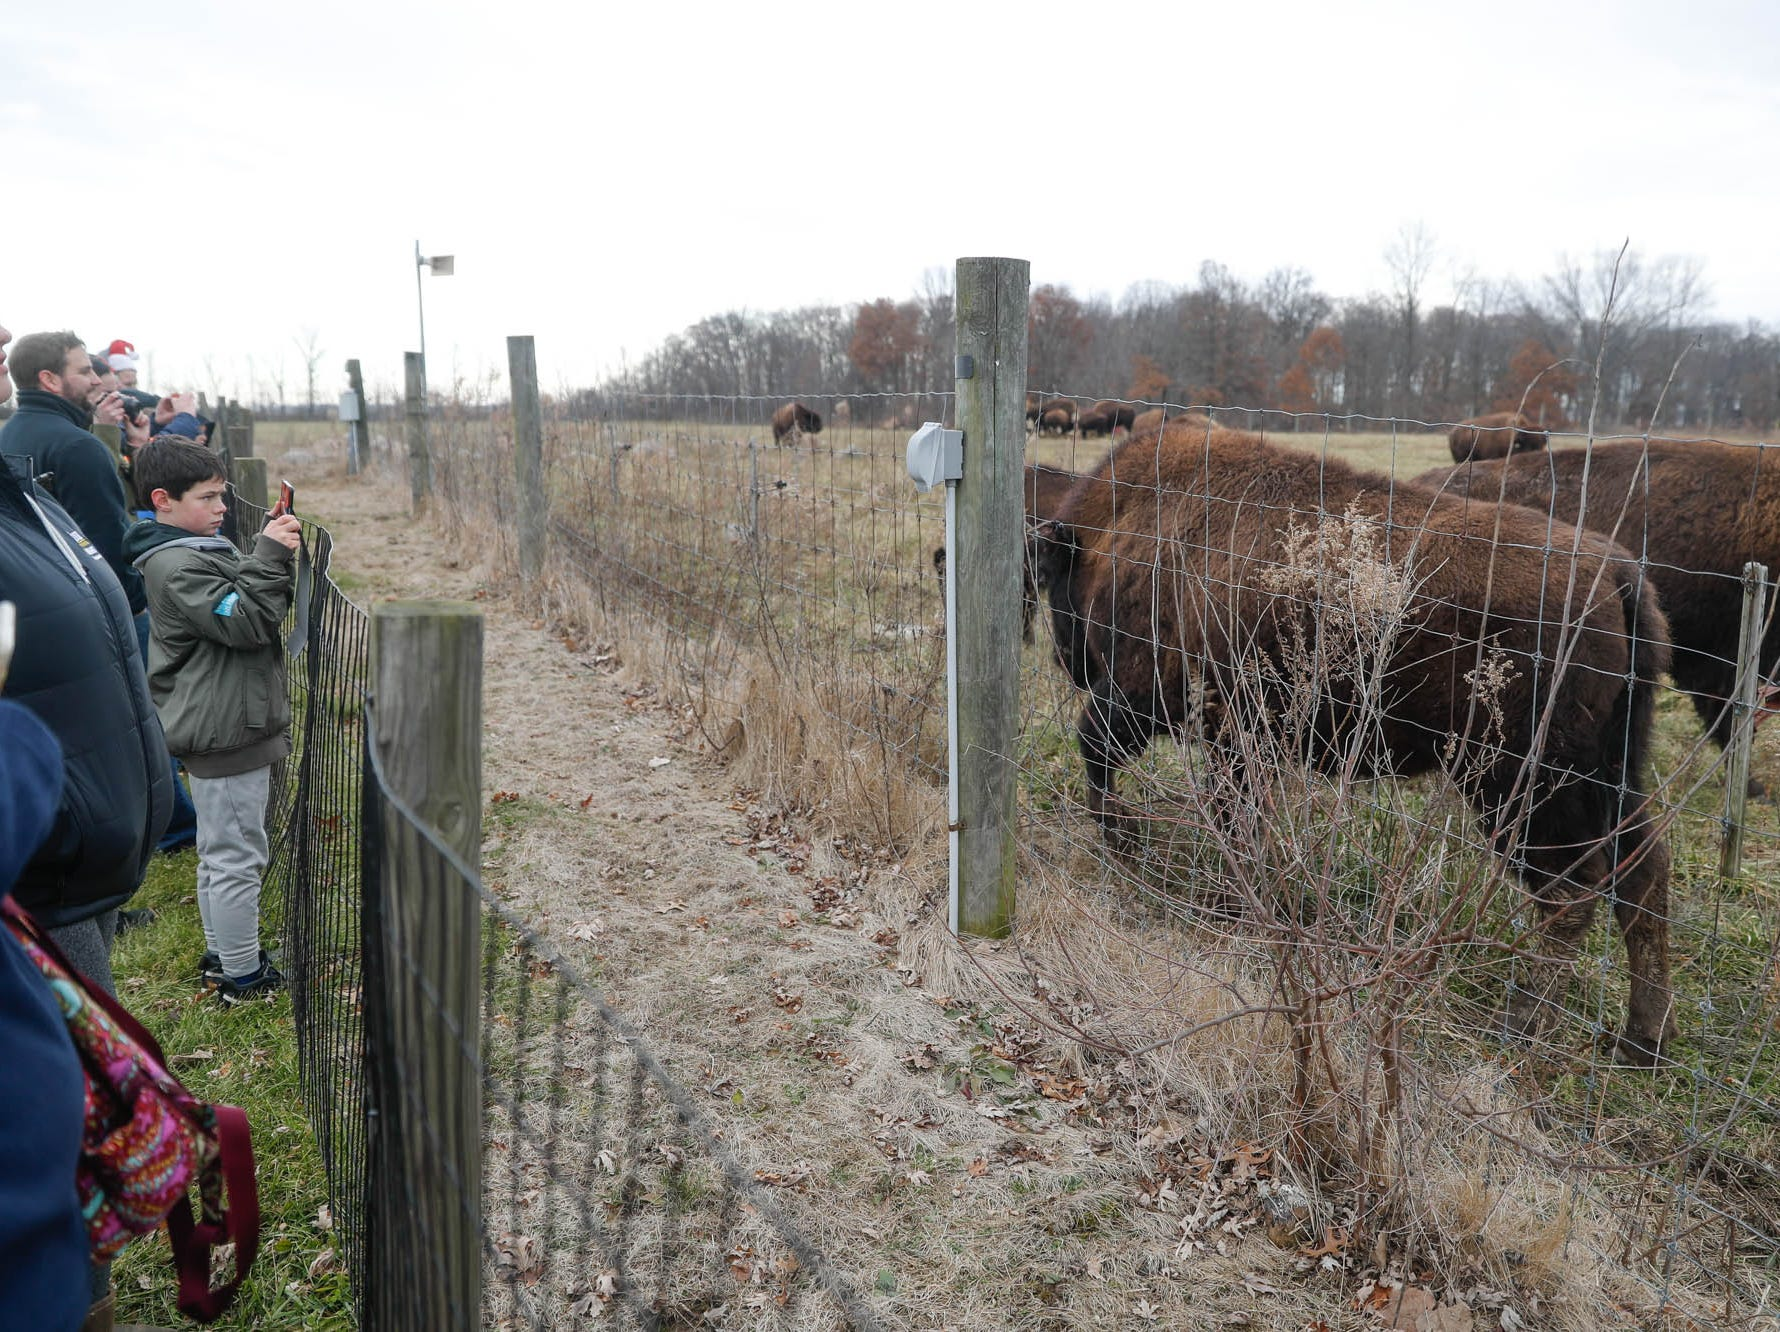 Guests visit with bison during a holiday tour of Wolf Park in Battle Ground Indiana on Saturday, Dec. 15, 2018.